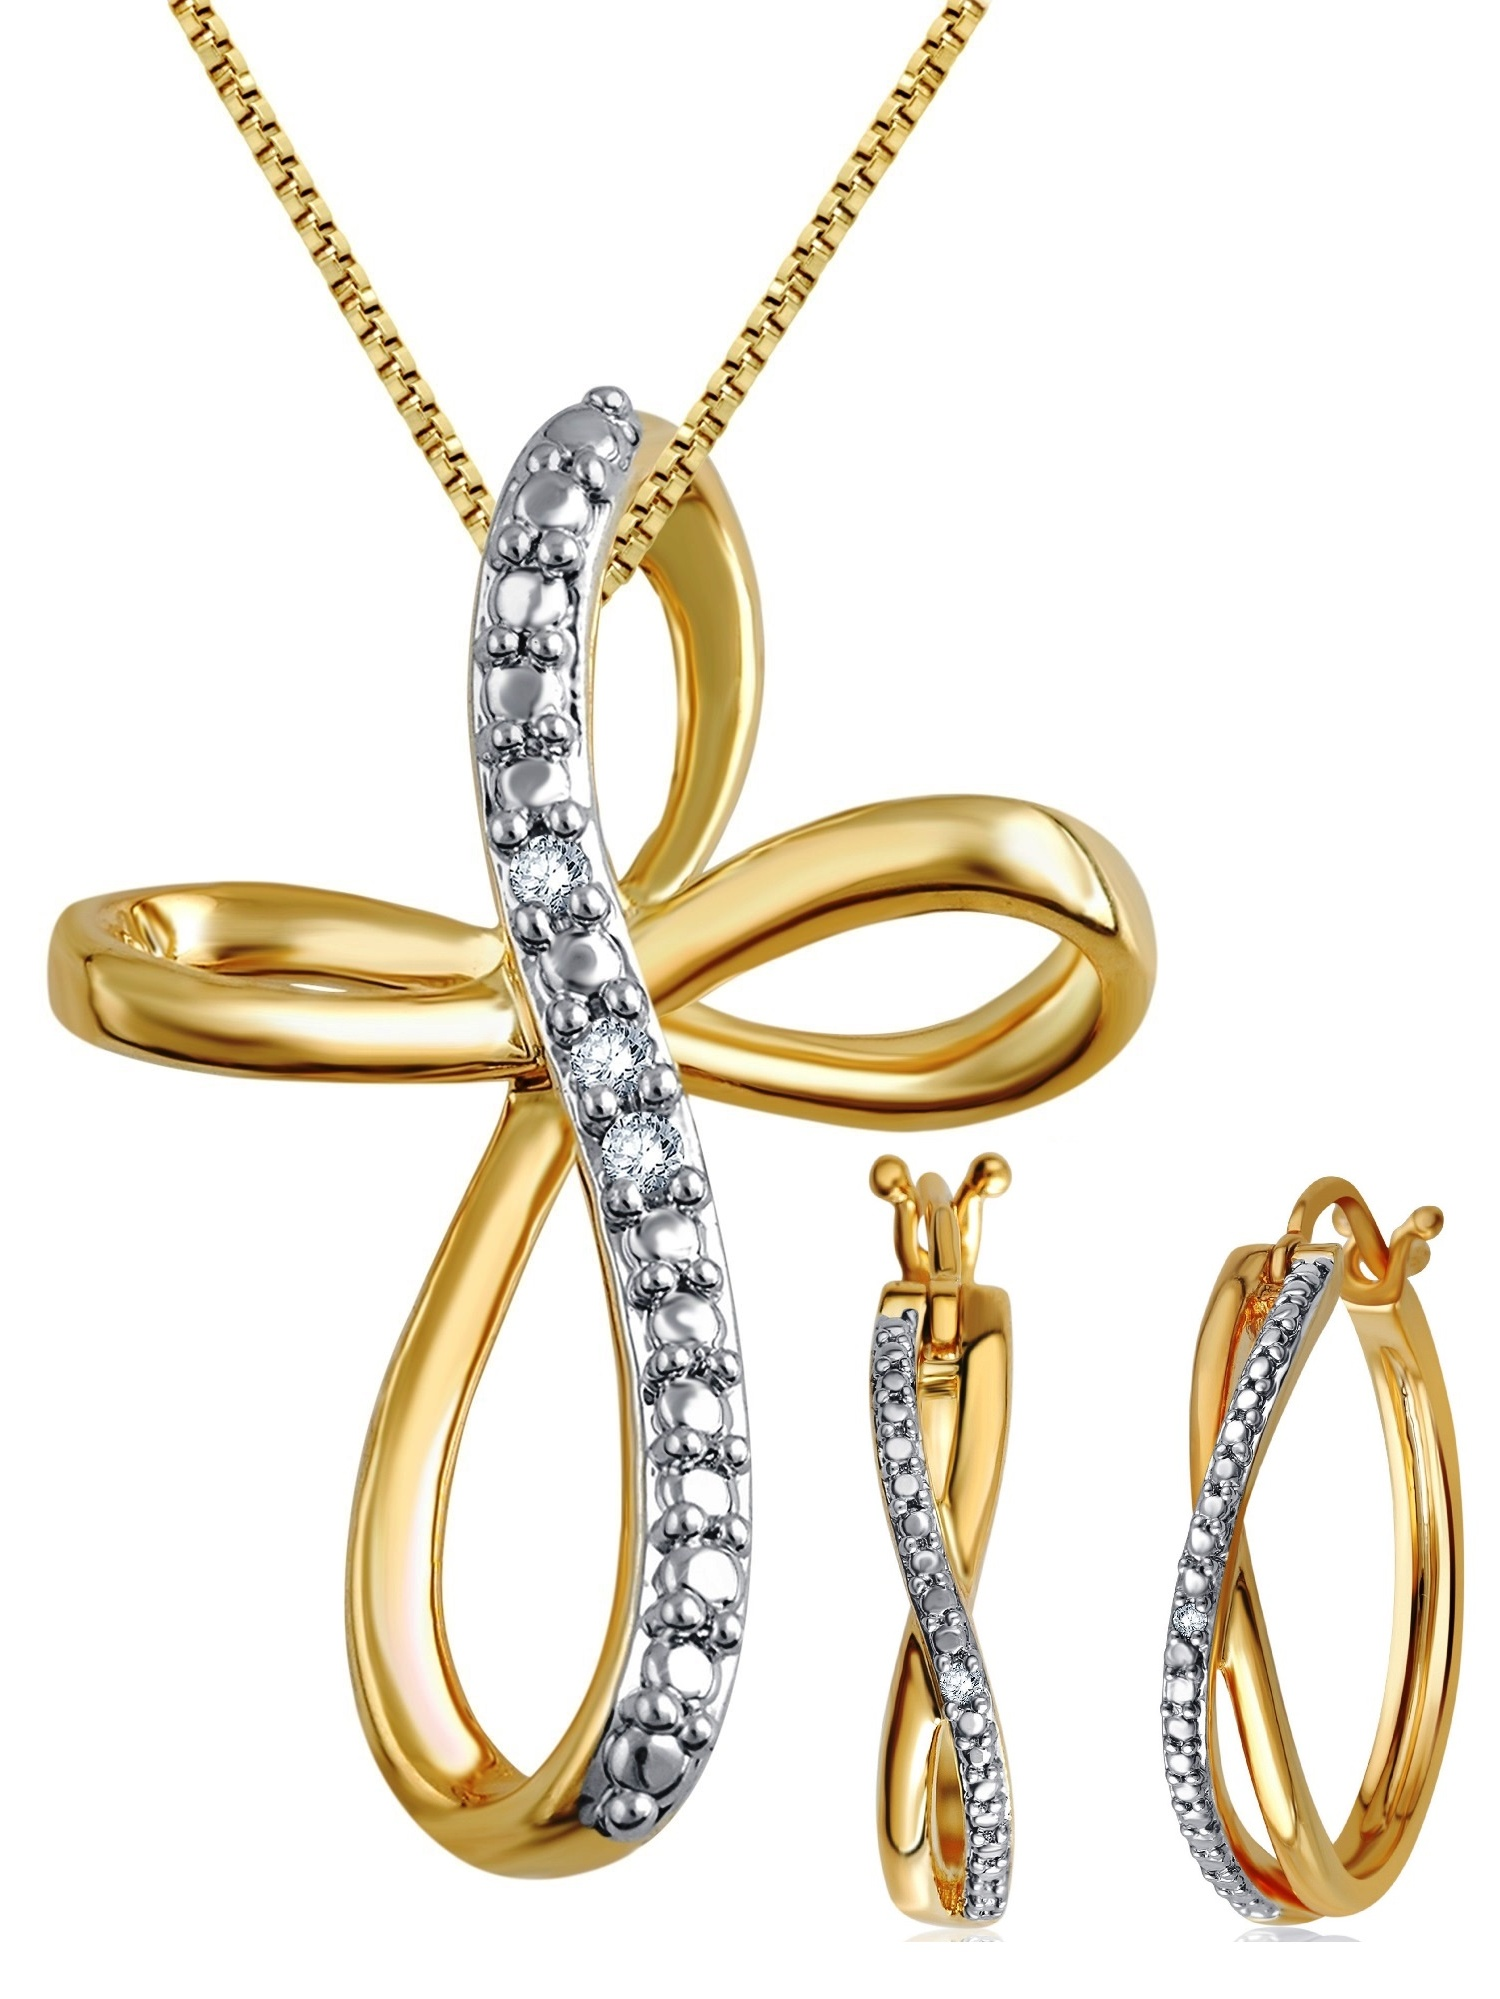 Gorgeous 0.25  Carat Diamond Accent  2 Piece Criss Cross Hoop Necklace & Earrings Set  In 14K Yellow Gold Plated